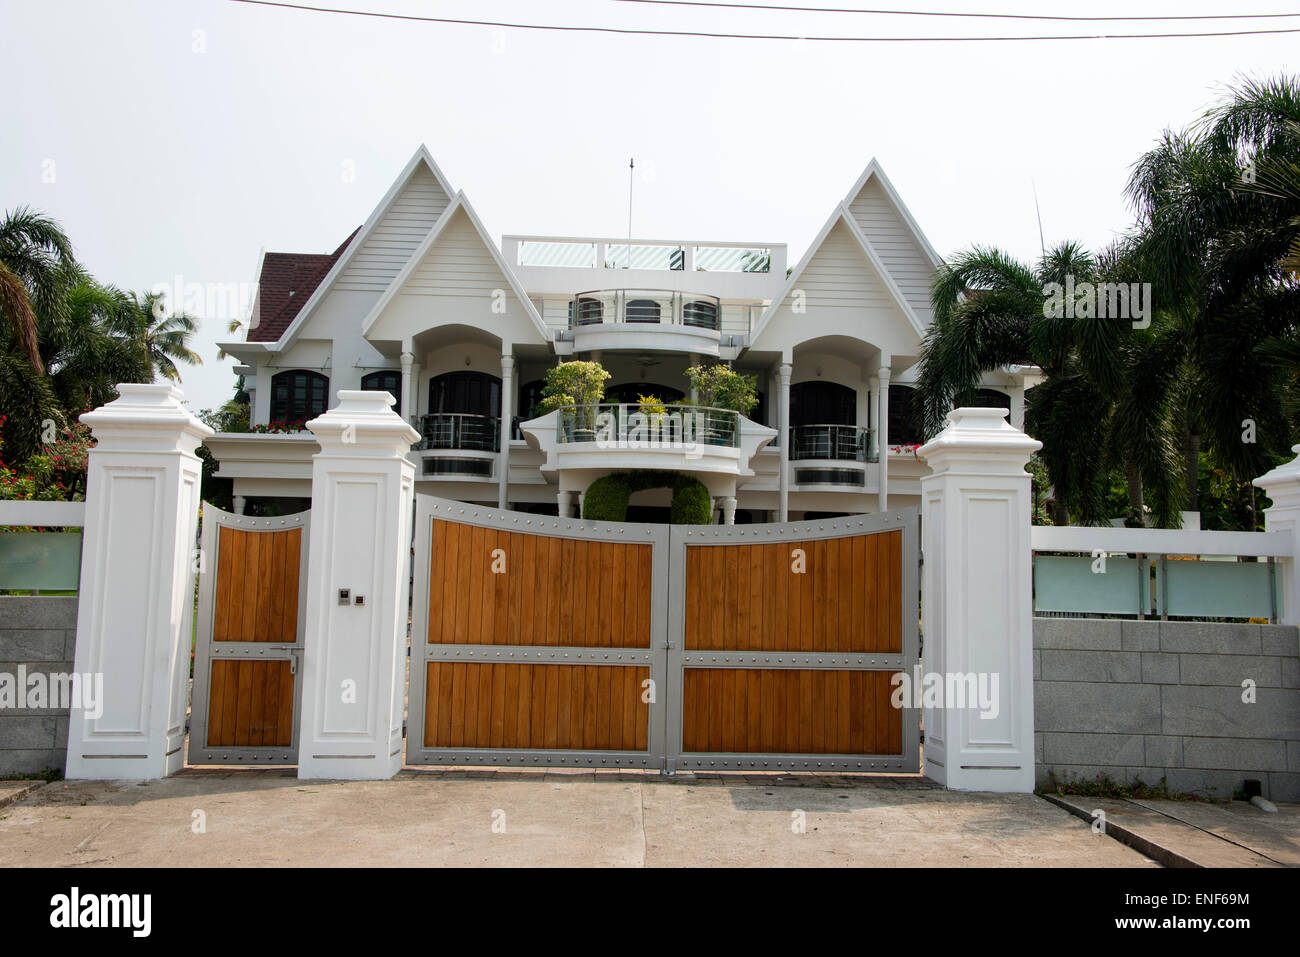 One of the many luxury built homes with a gated drive in the residential area of  Emakkulam in kerala India - Stock Image